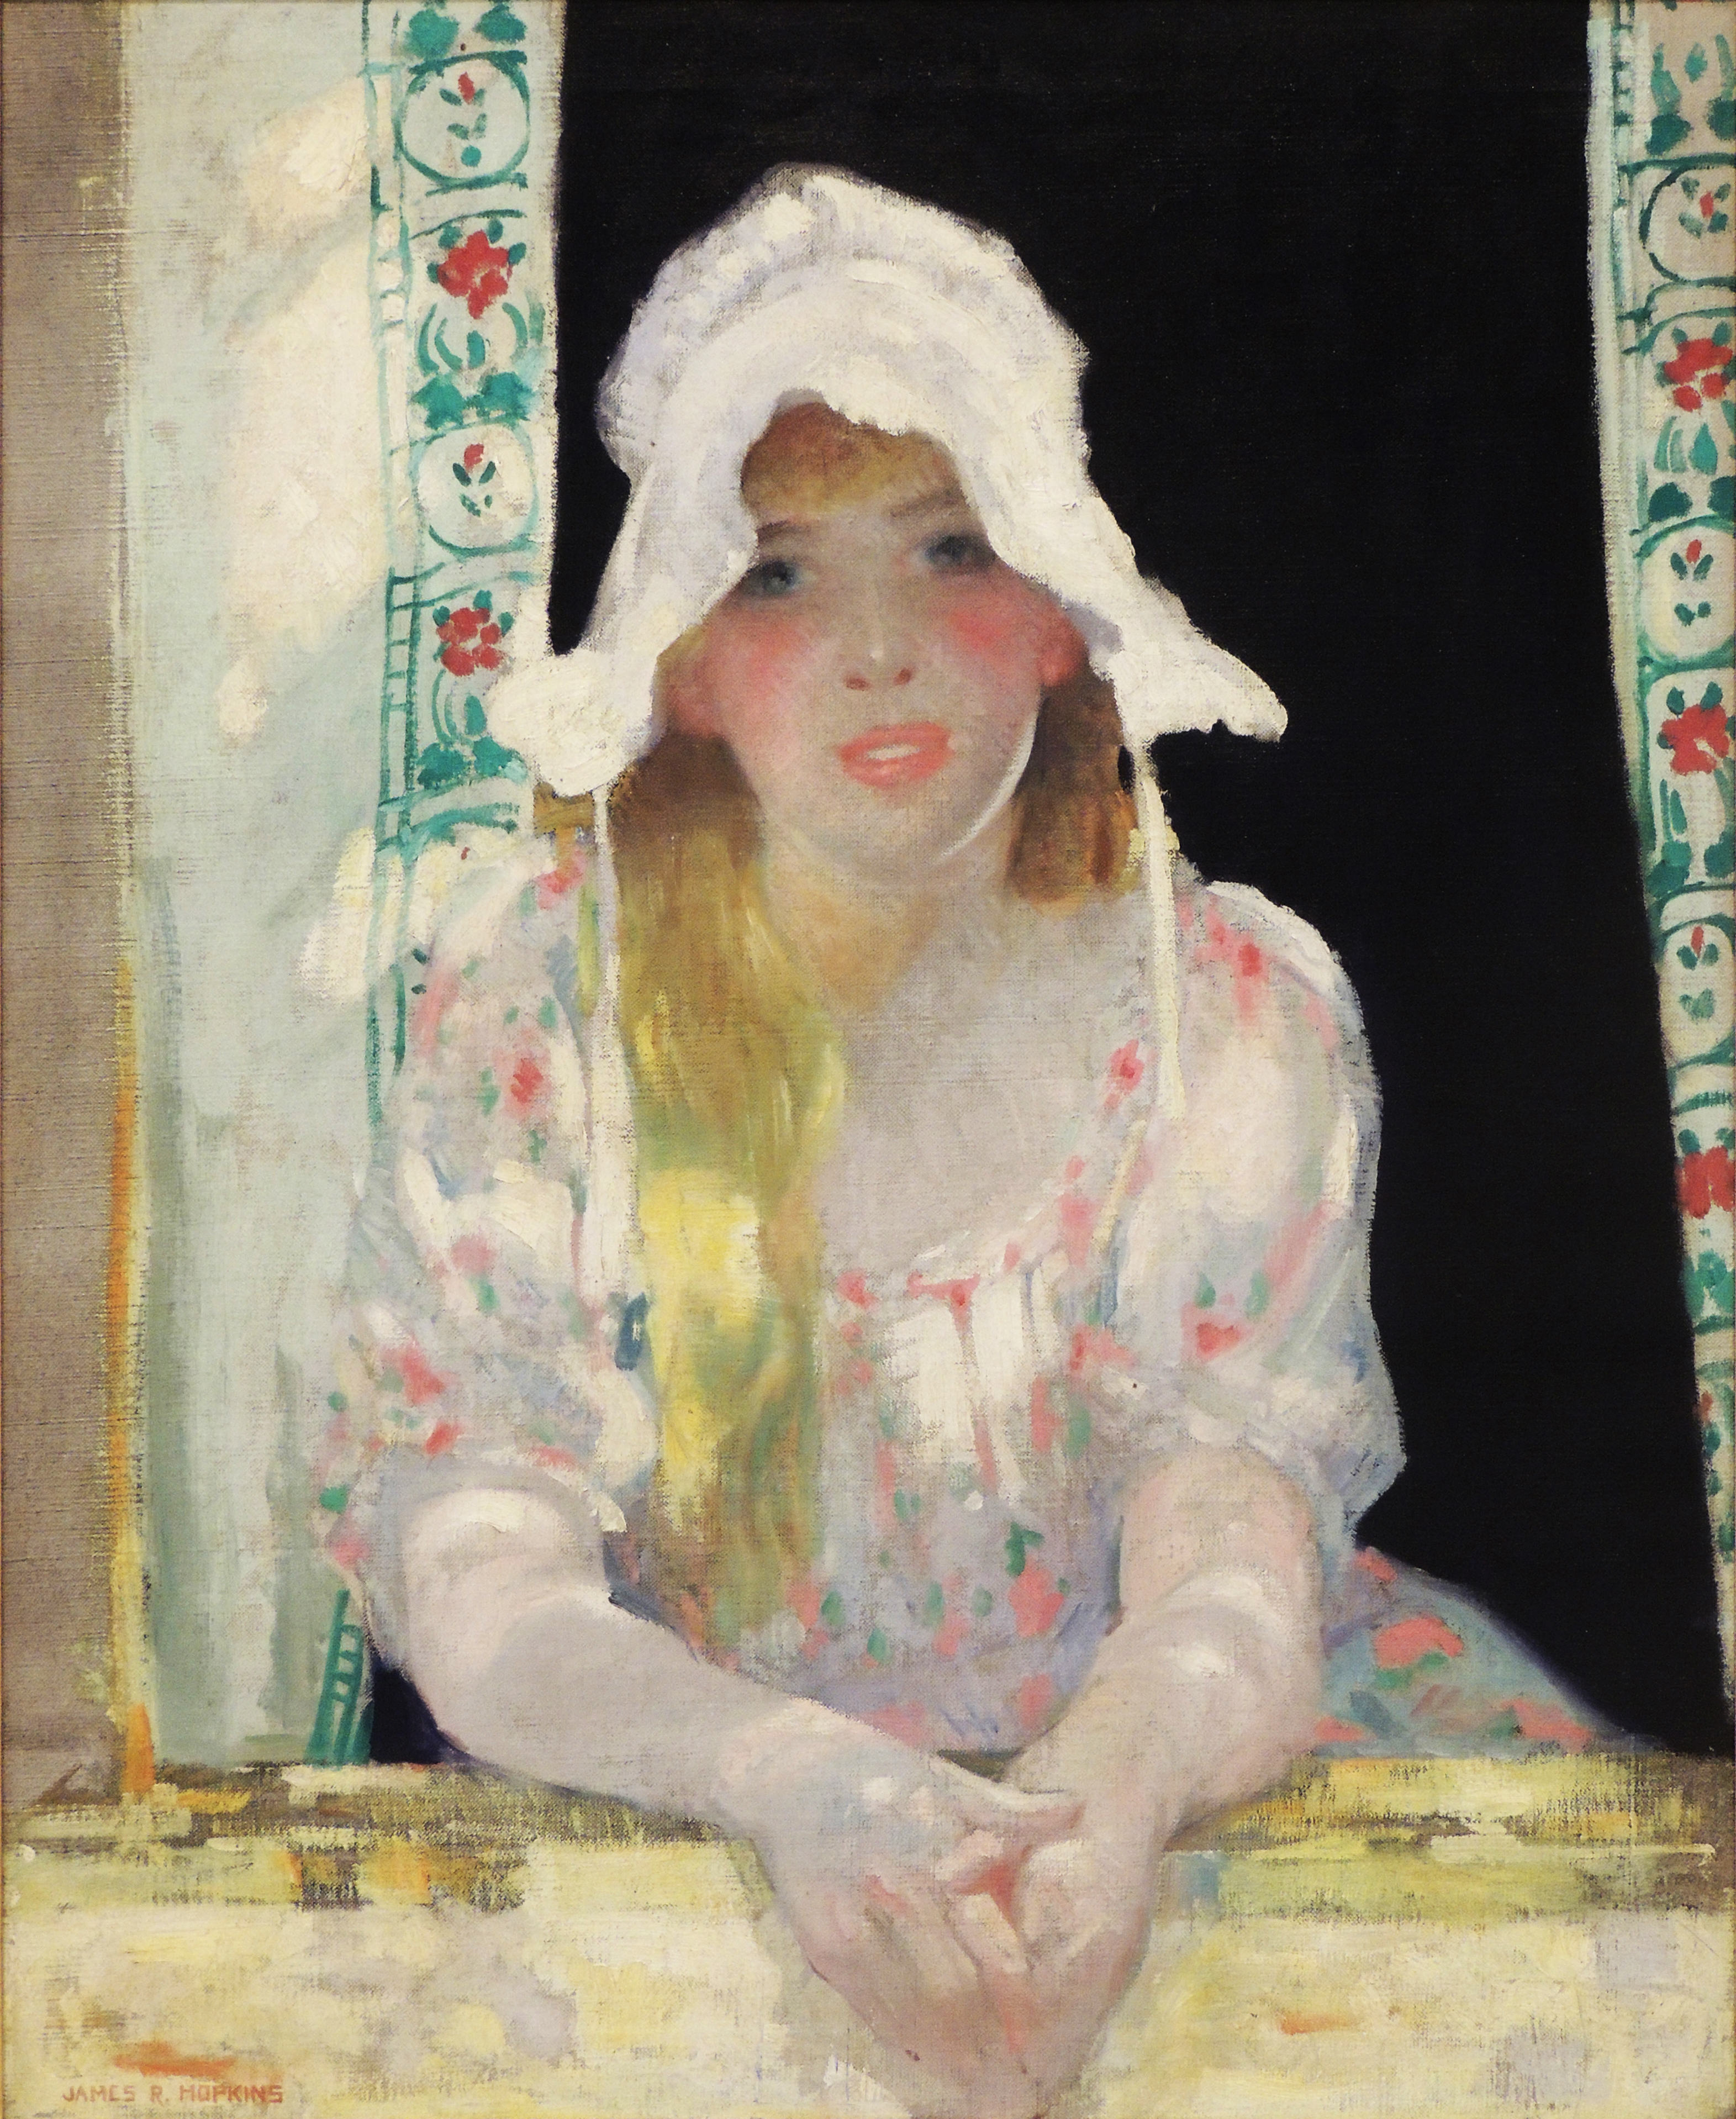 James R. Hopkins | GIRL WITH THE SUN BONNET | oil on canvas | 32 x 26"